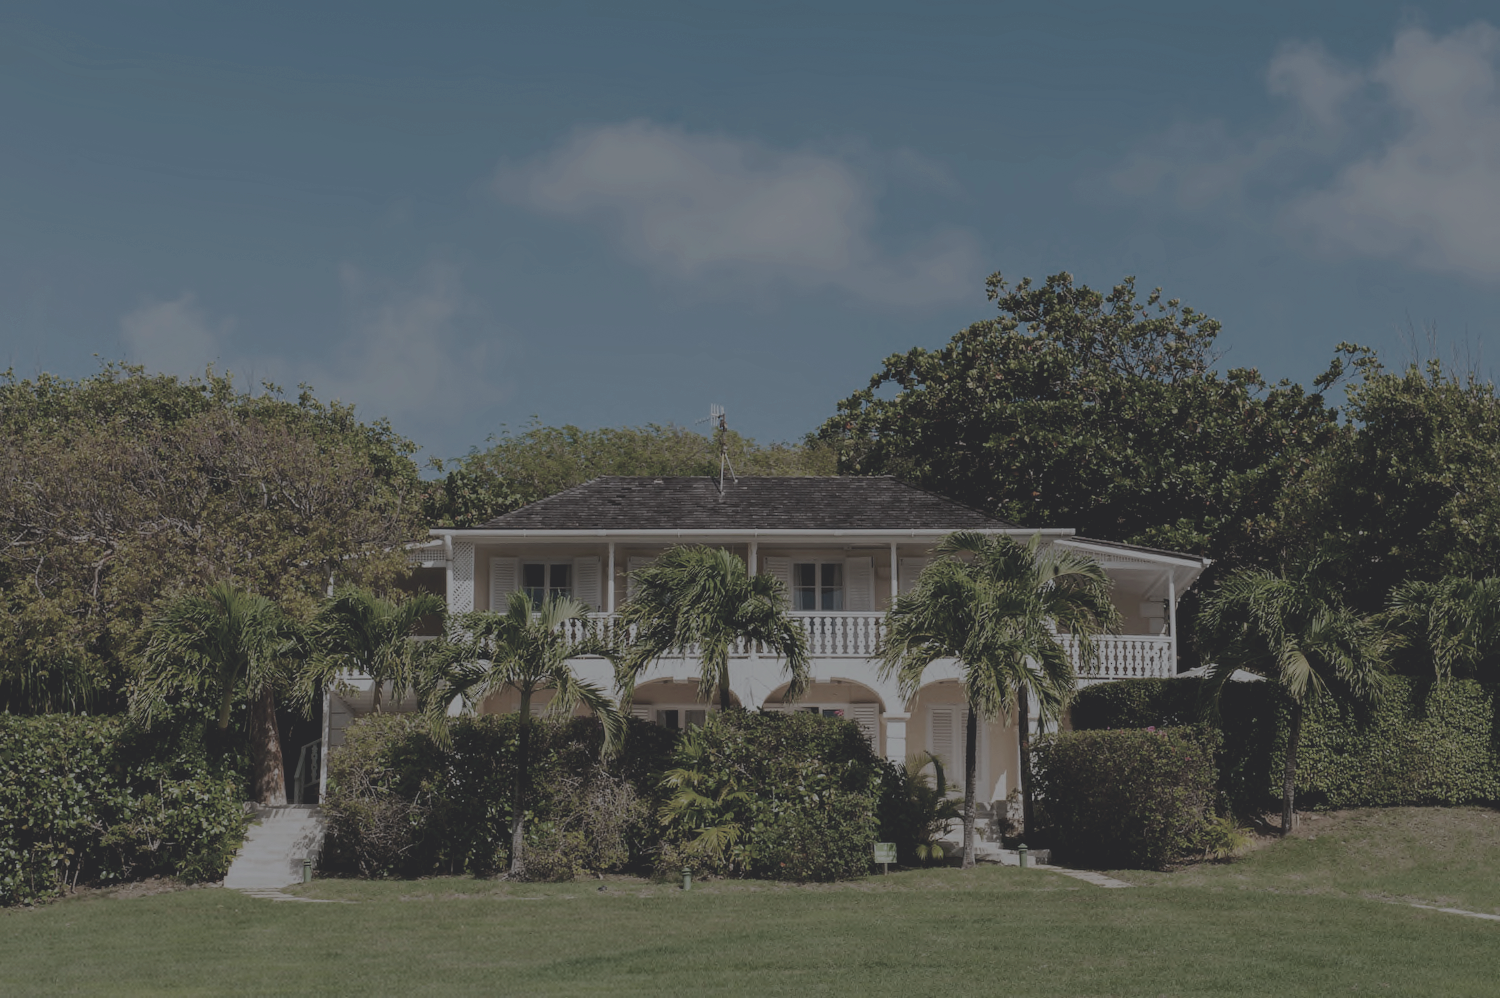 PHOTO: THE COTTON HOUSE |COURTESY OF THE MUSTIQUE COMPANY